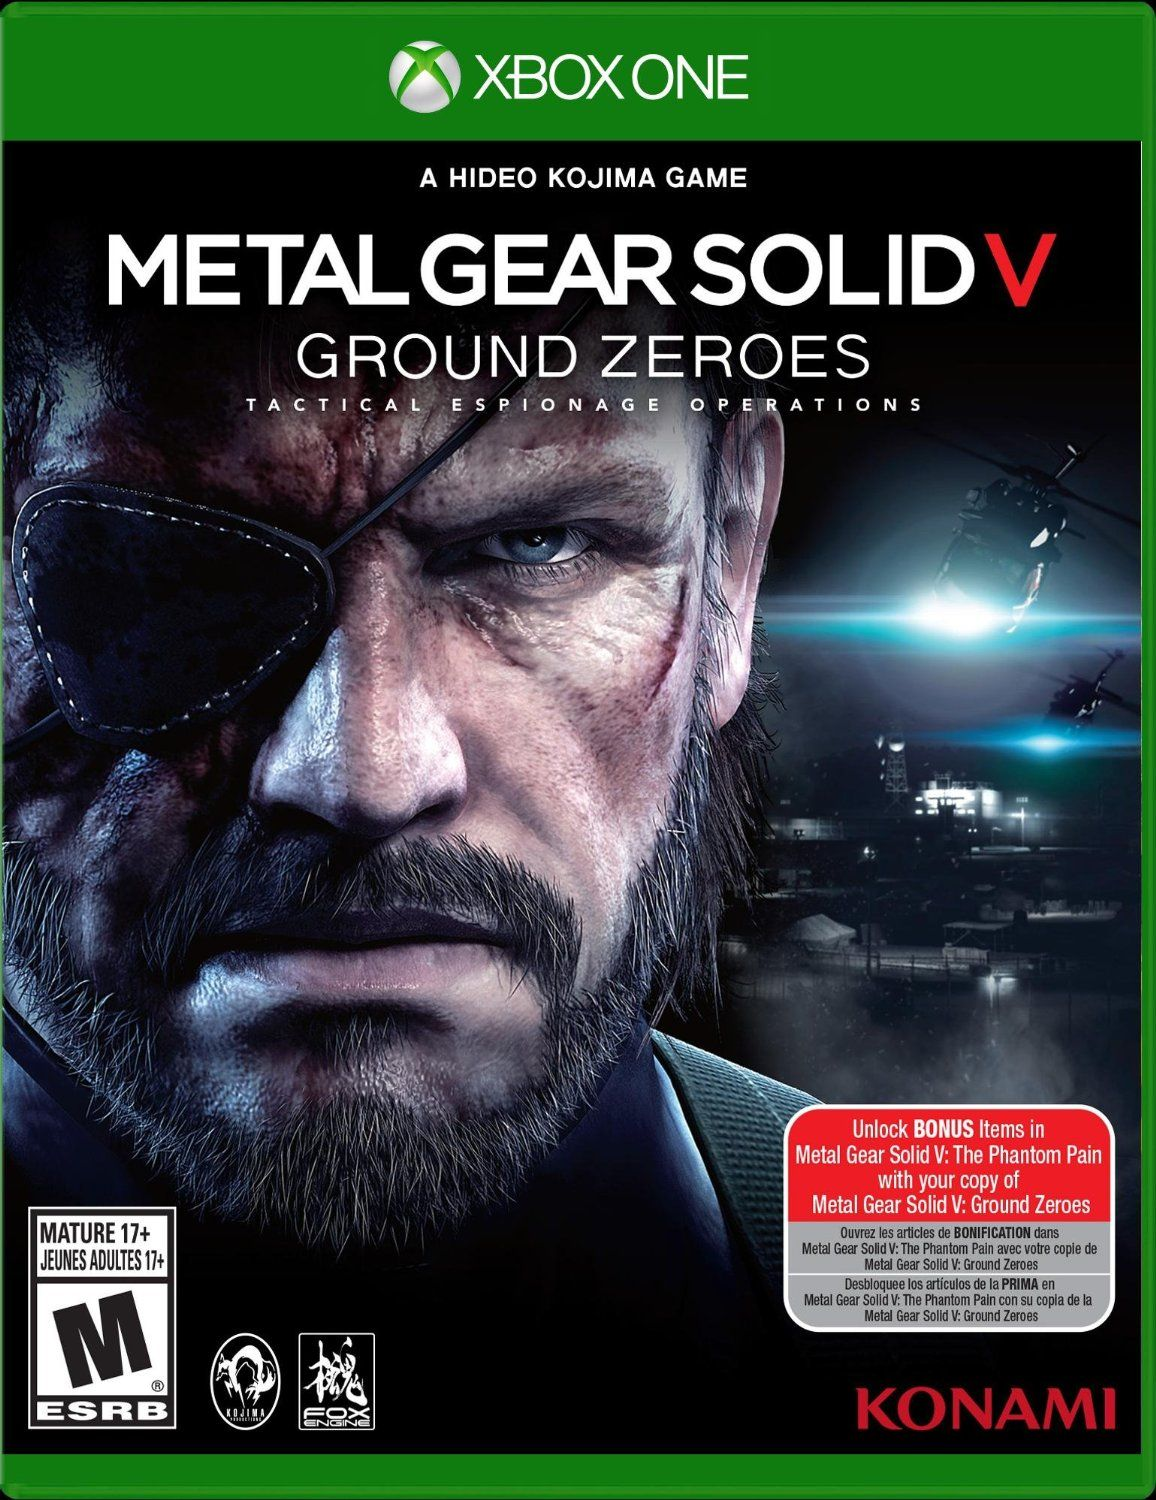 2ac0f6999a Metal Gear Solid V  Ground Zeroes - Xbox One Standard Edition for  29.99